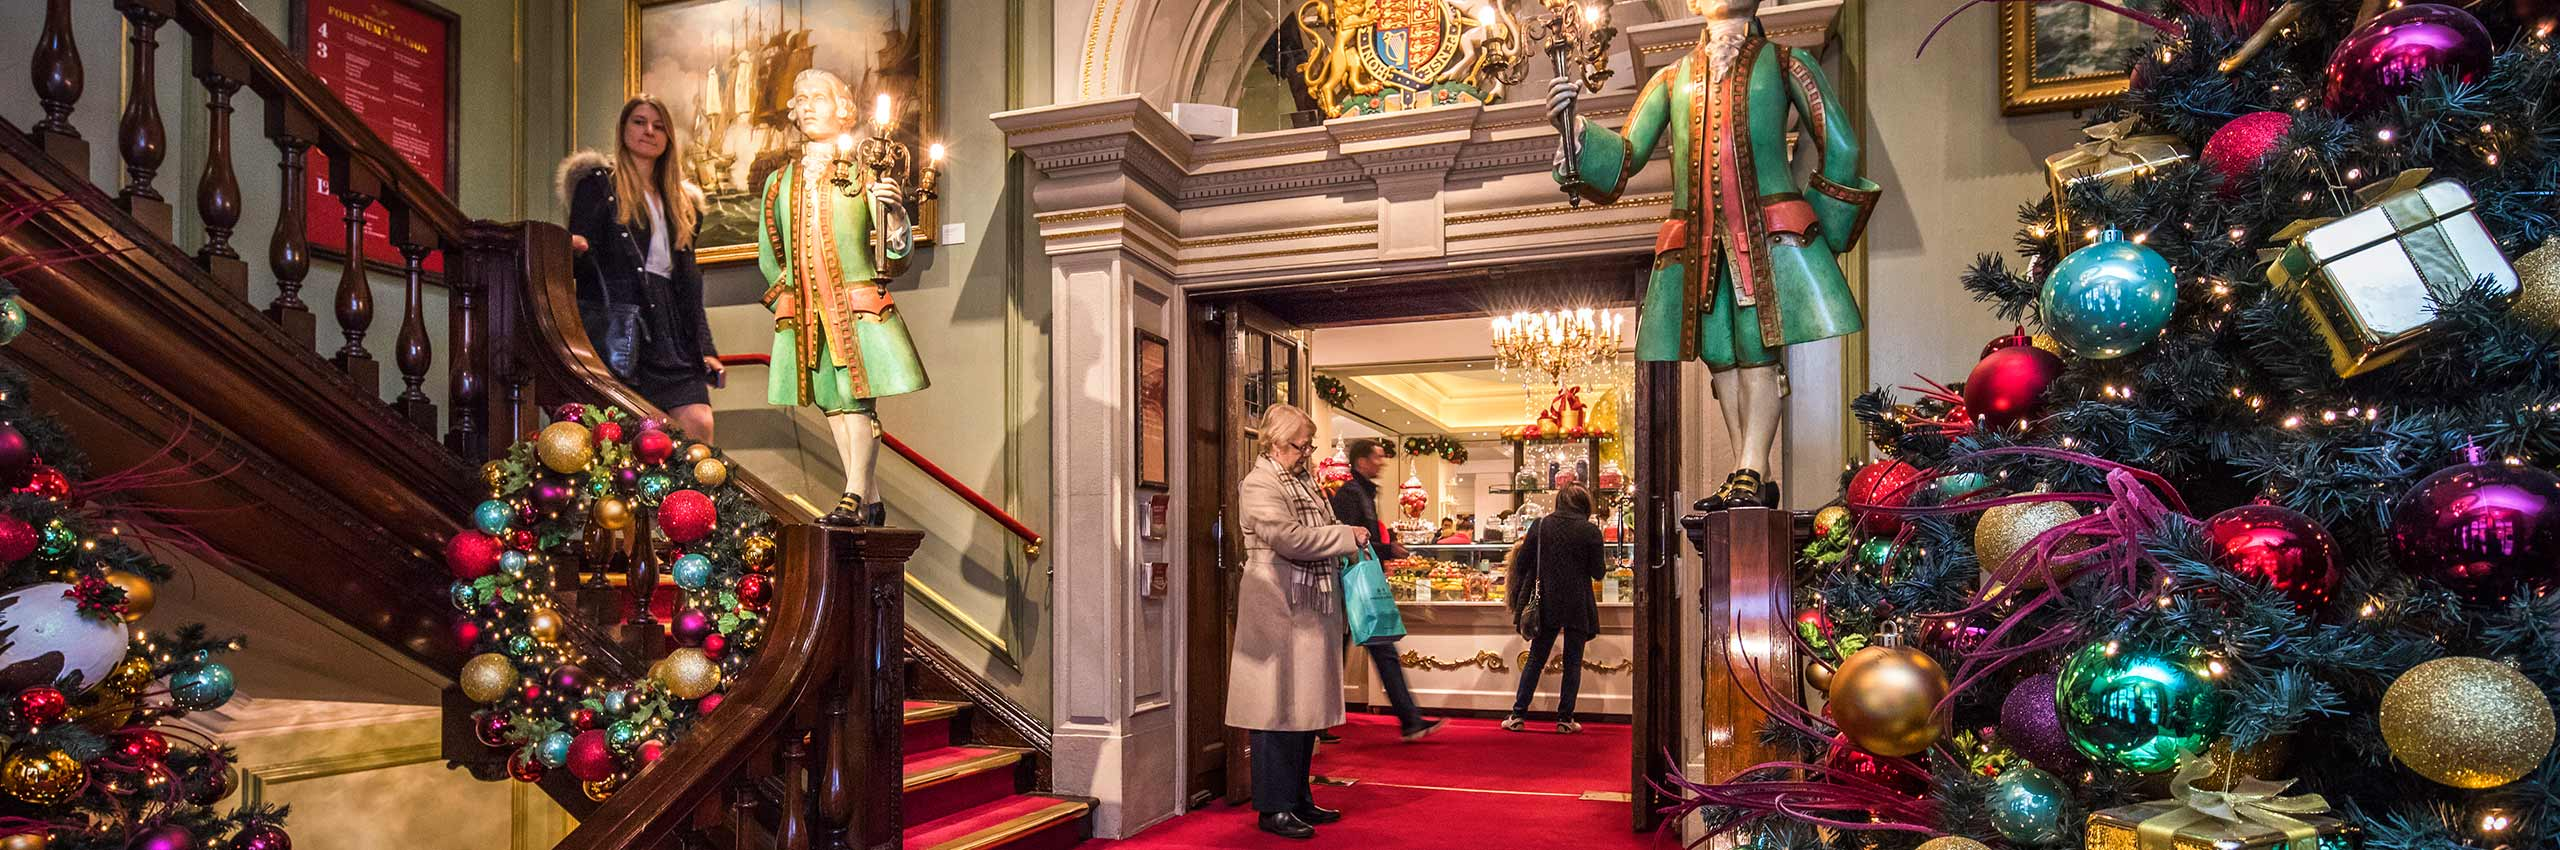 BVH-20643832 | UK/London, Fortnum & Mason Department Store in Picadilly Street in December | © Reinhard Schmid/4Corners